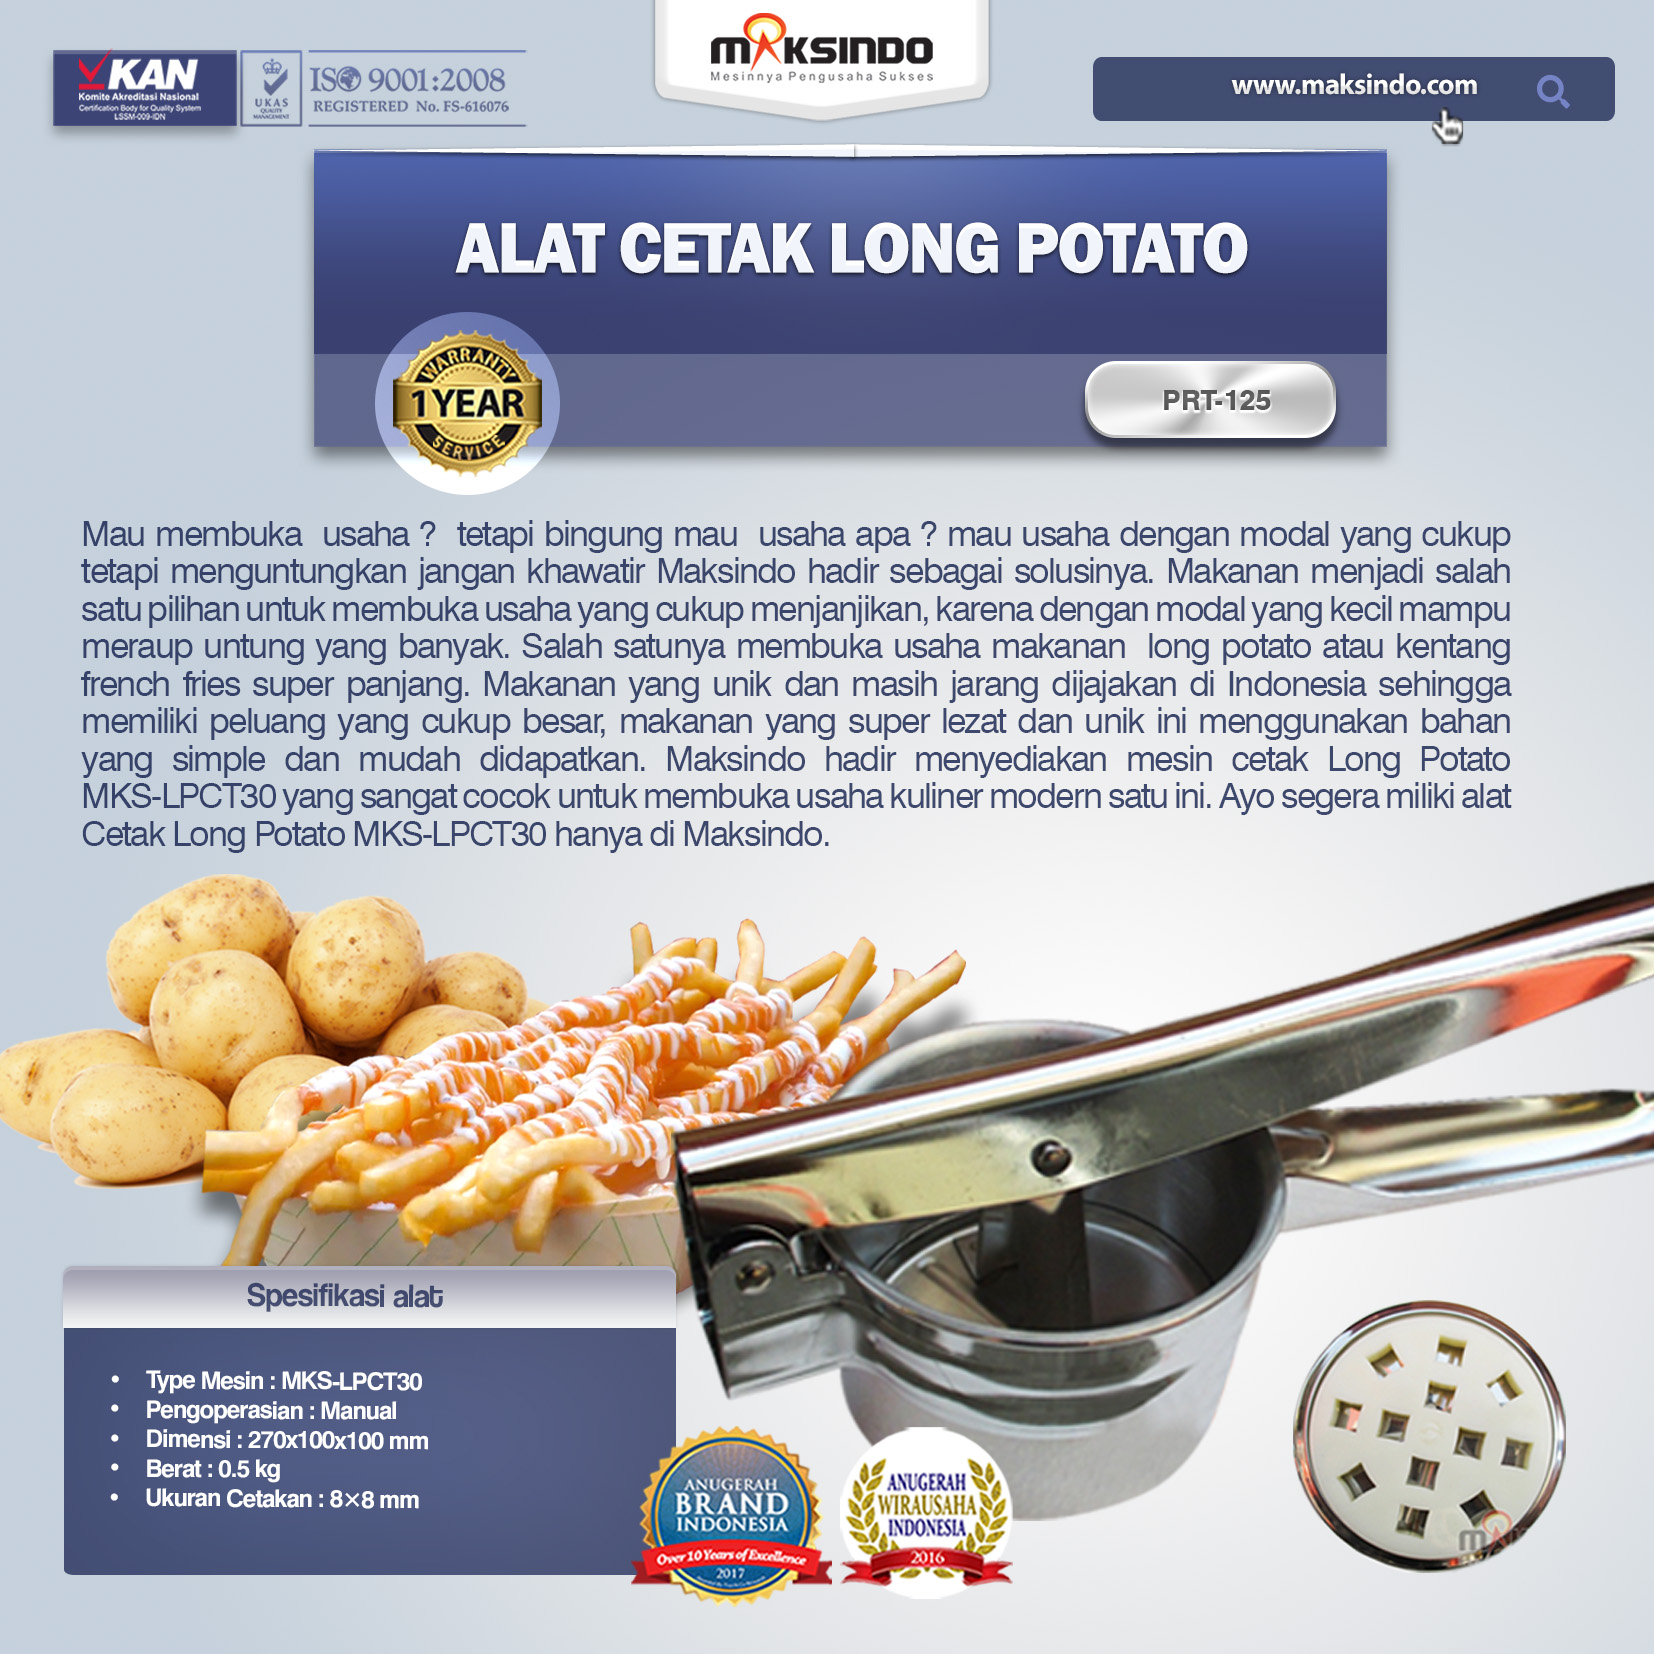 Alat-Cetak-Long-Potato-MKS-LPCT30-1